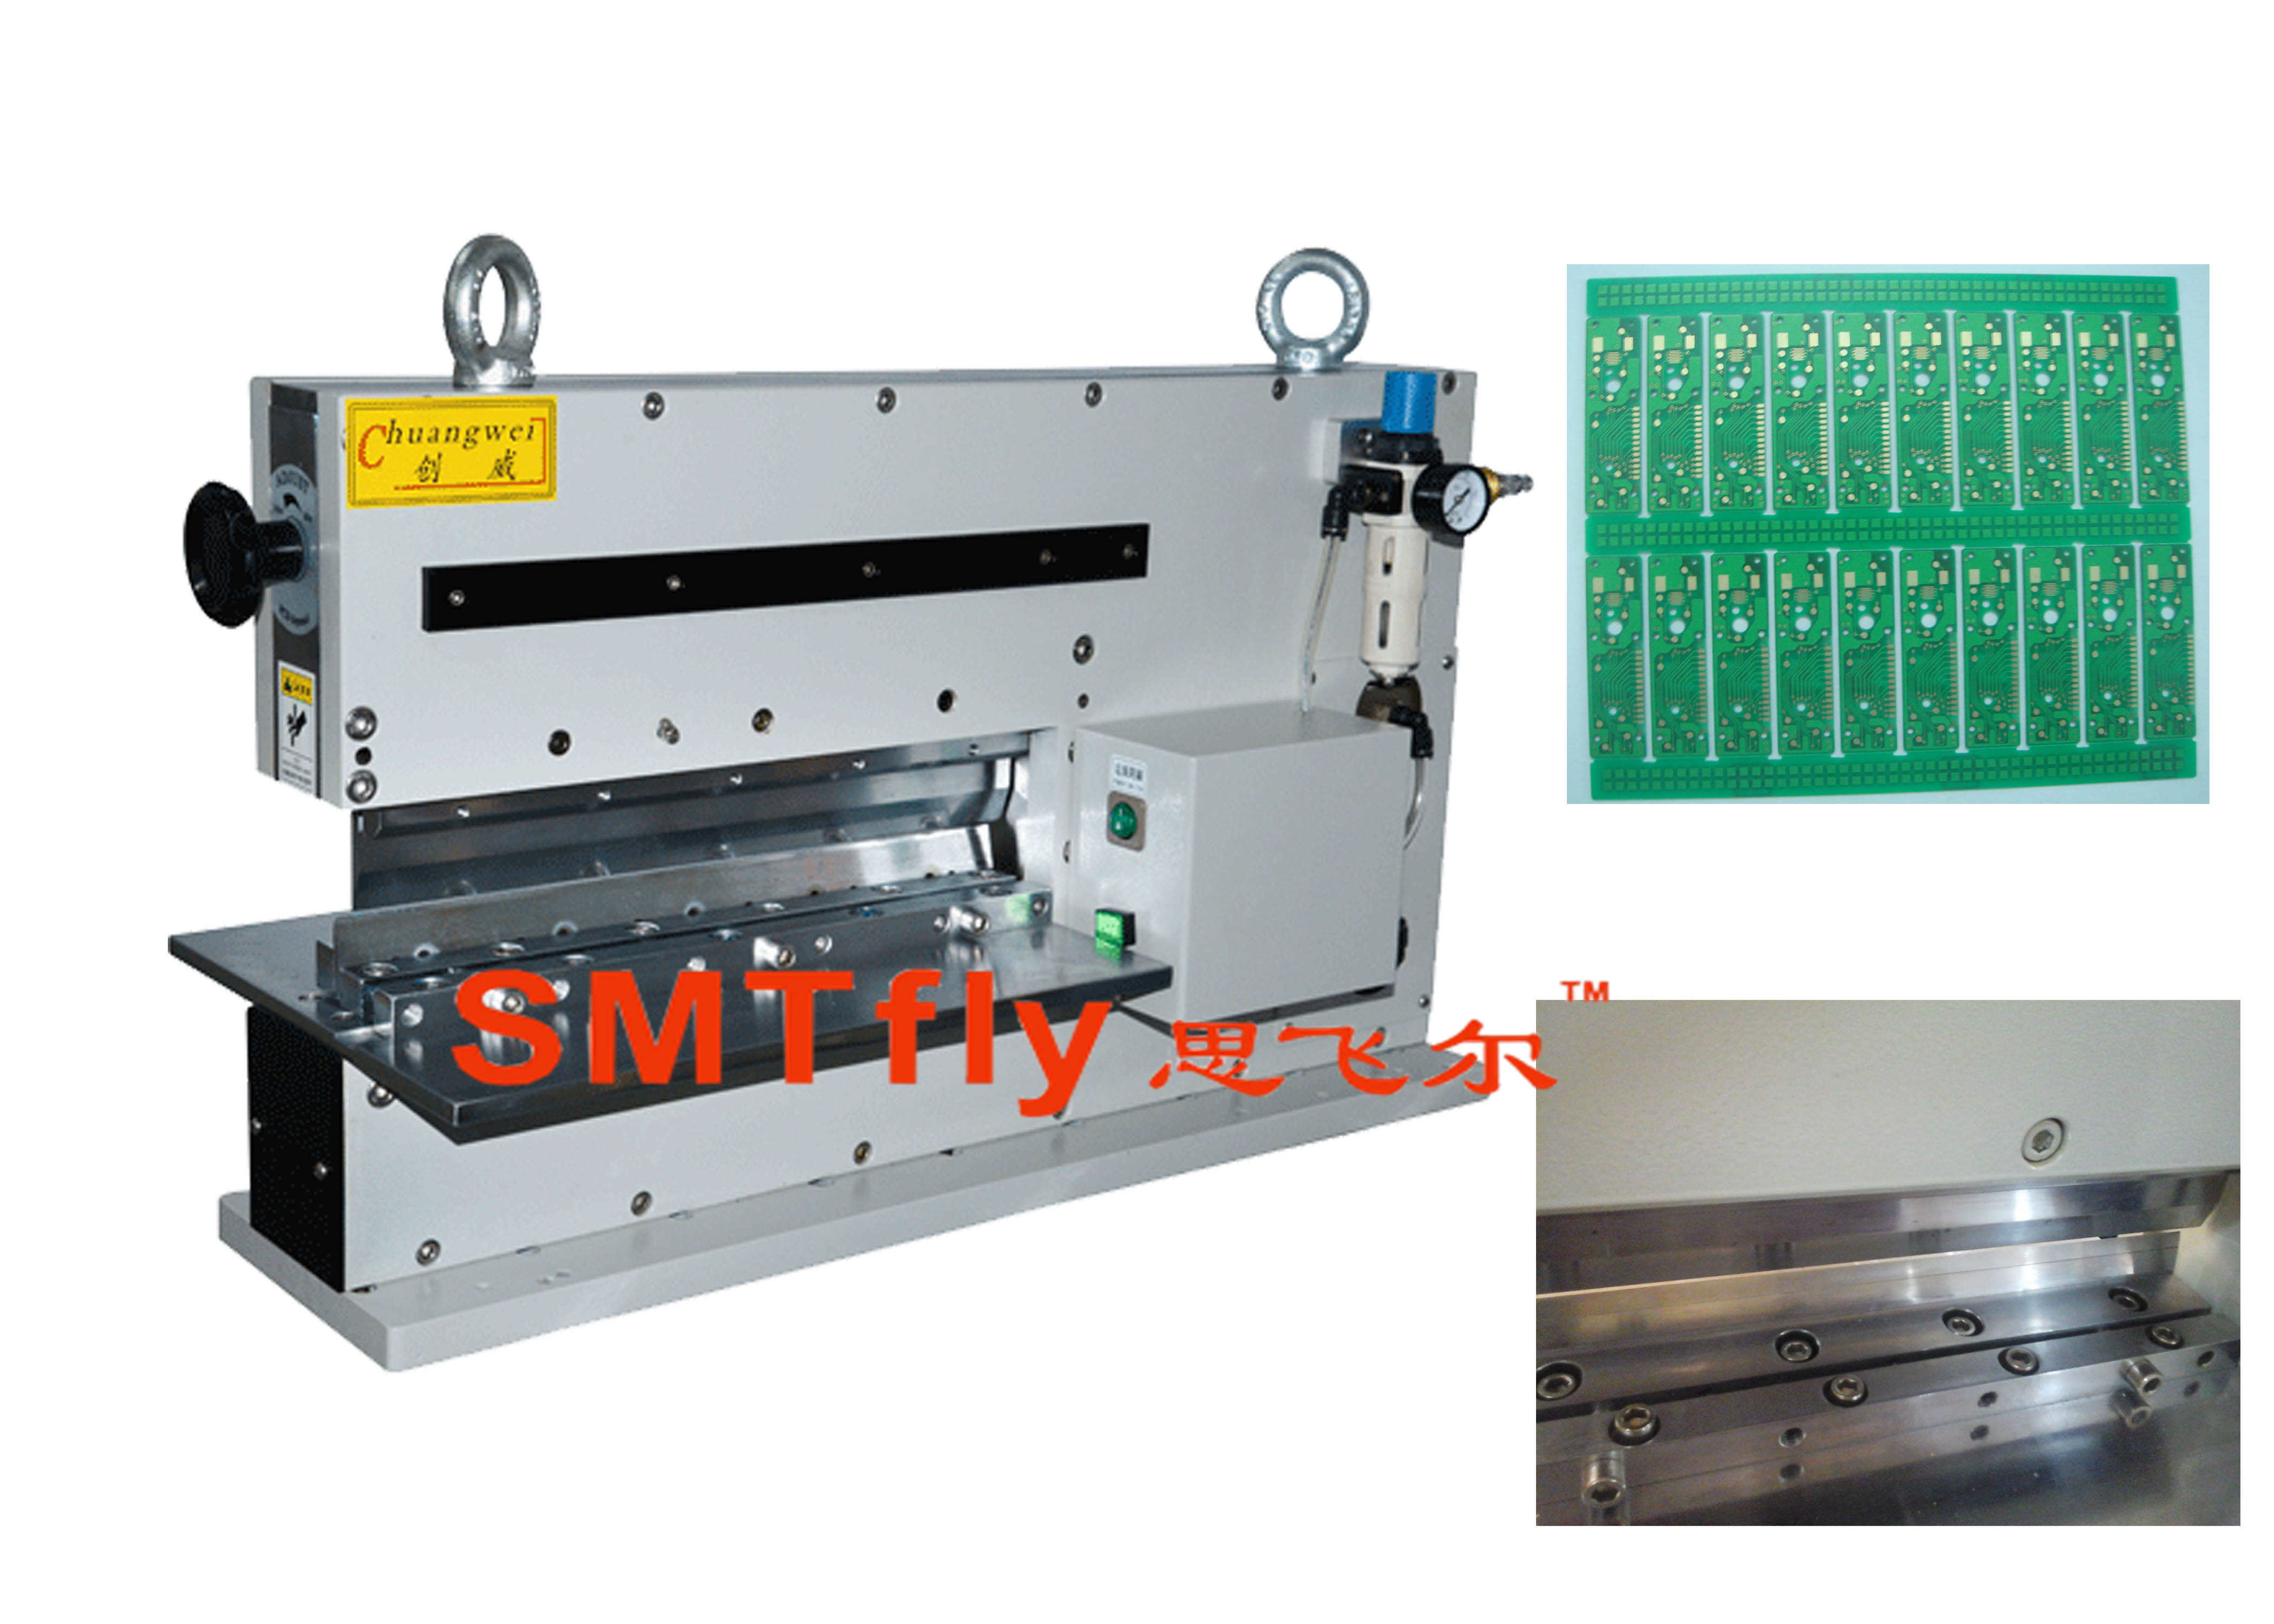 Manul Pcb Depaneling China Automatic V Cut Singulation Machine For Printed Circuit Multilayer Toolsmtfly 400j